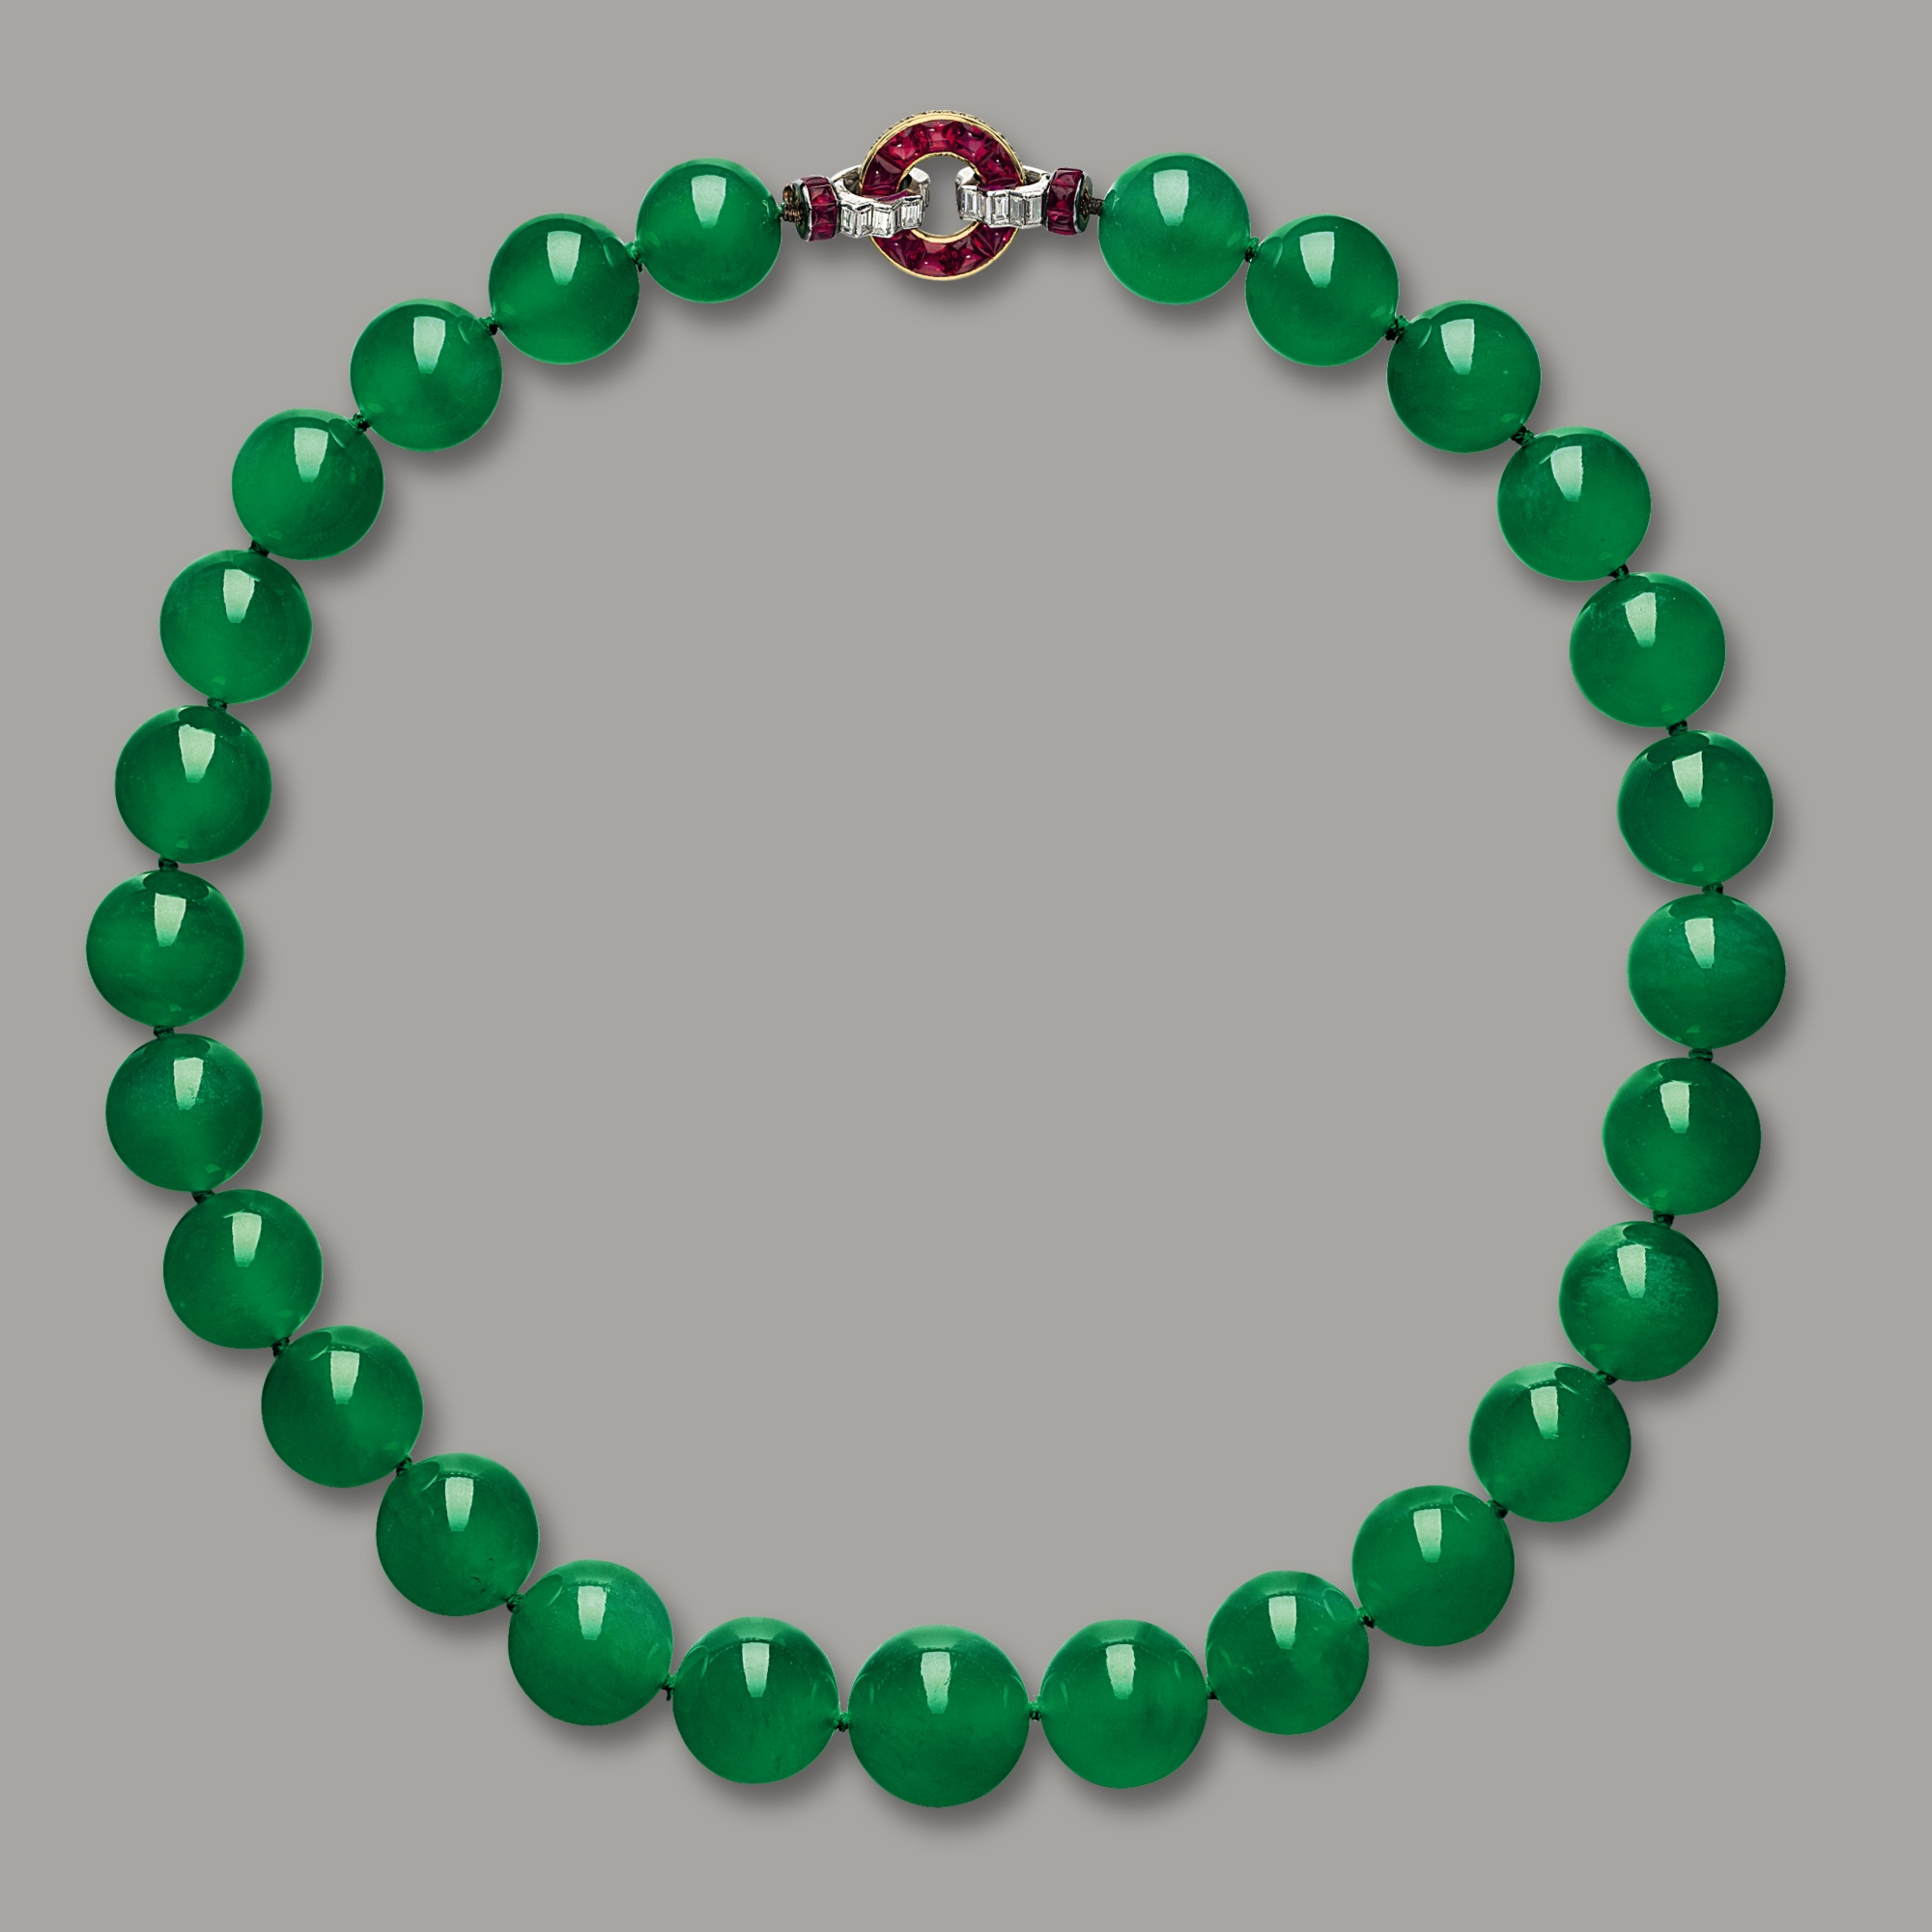 jadite-necklace